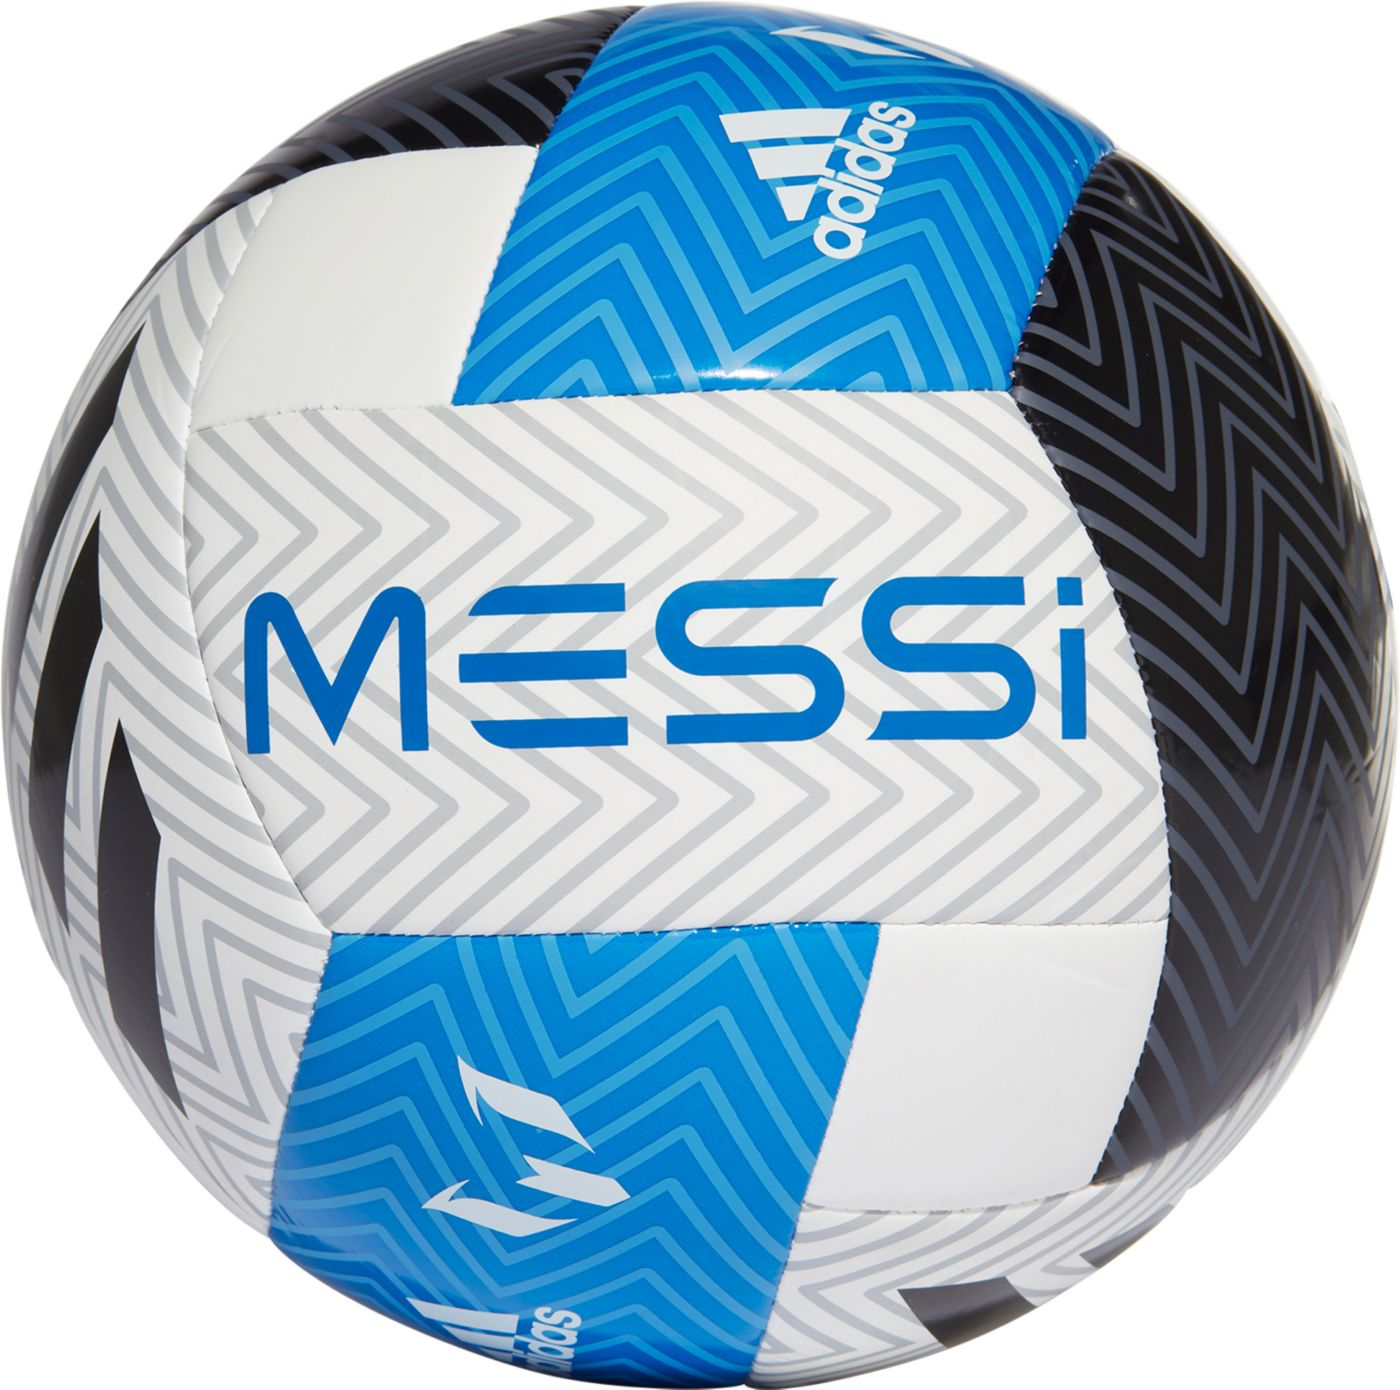 adidas Messi Glider Soccer Ball